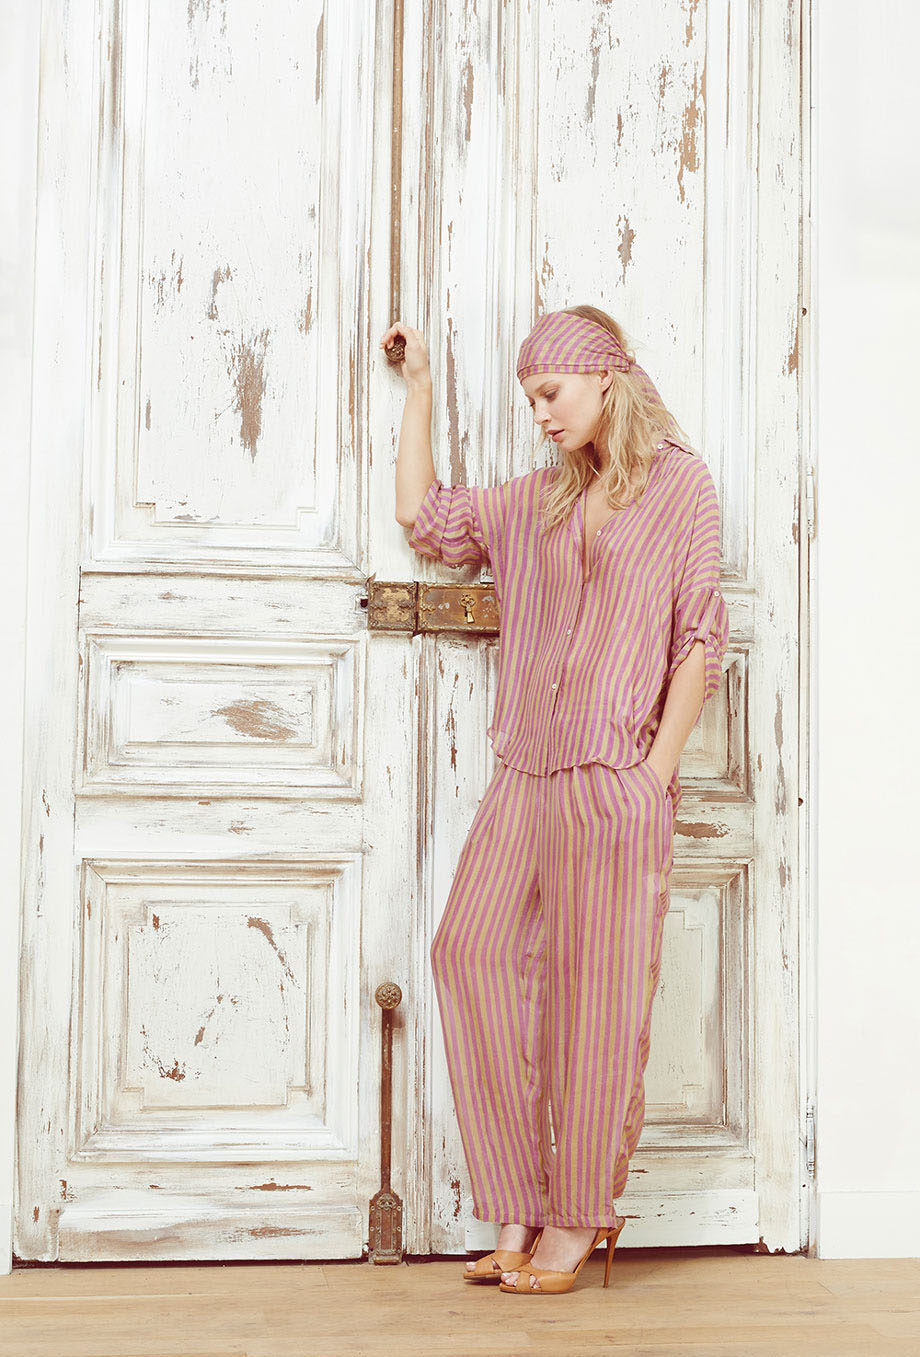 Soul Sisters_Lookbook_mesdemoisellesparis